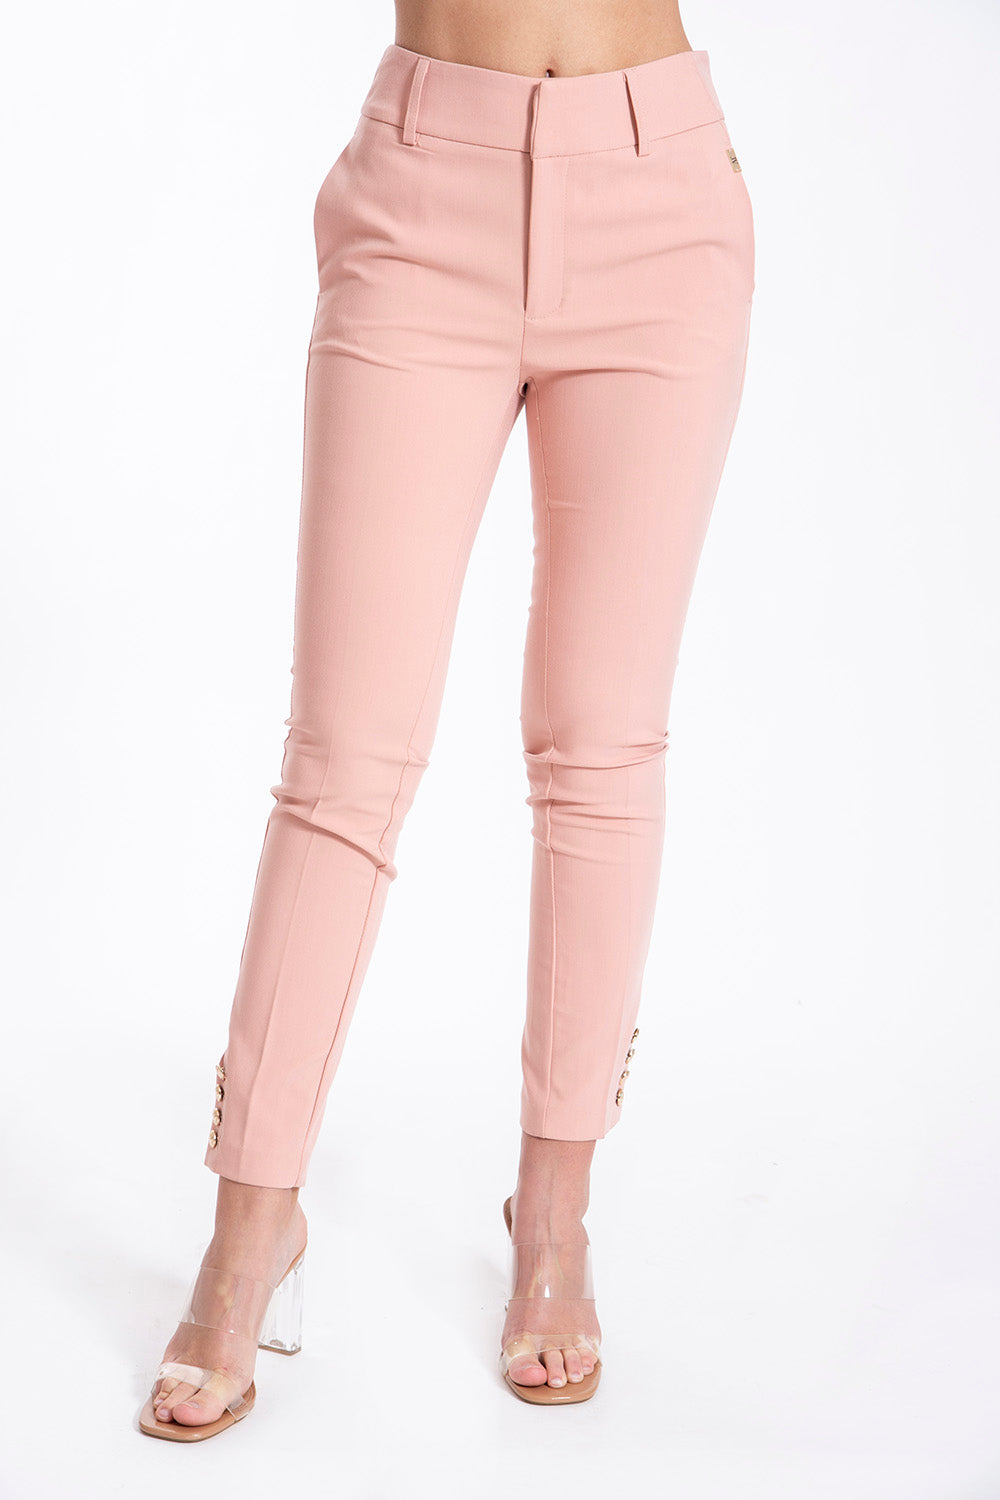 JoshV ankle length tapered trousers